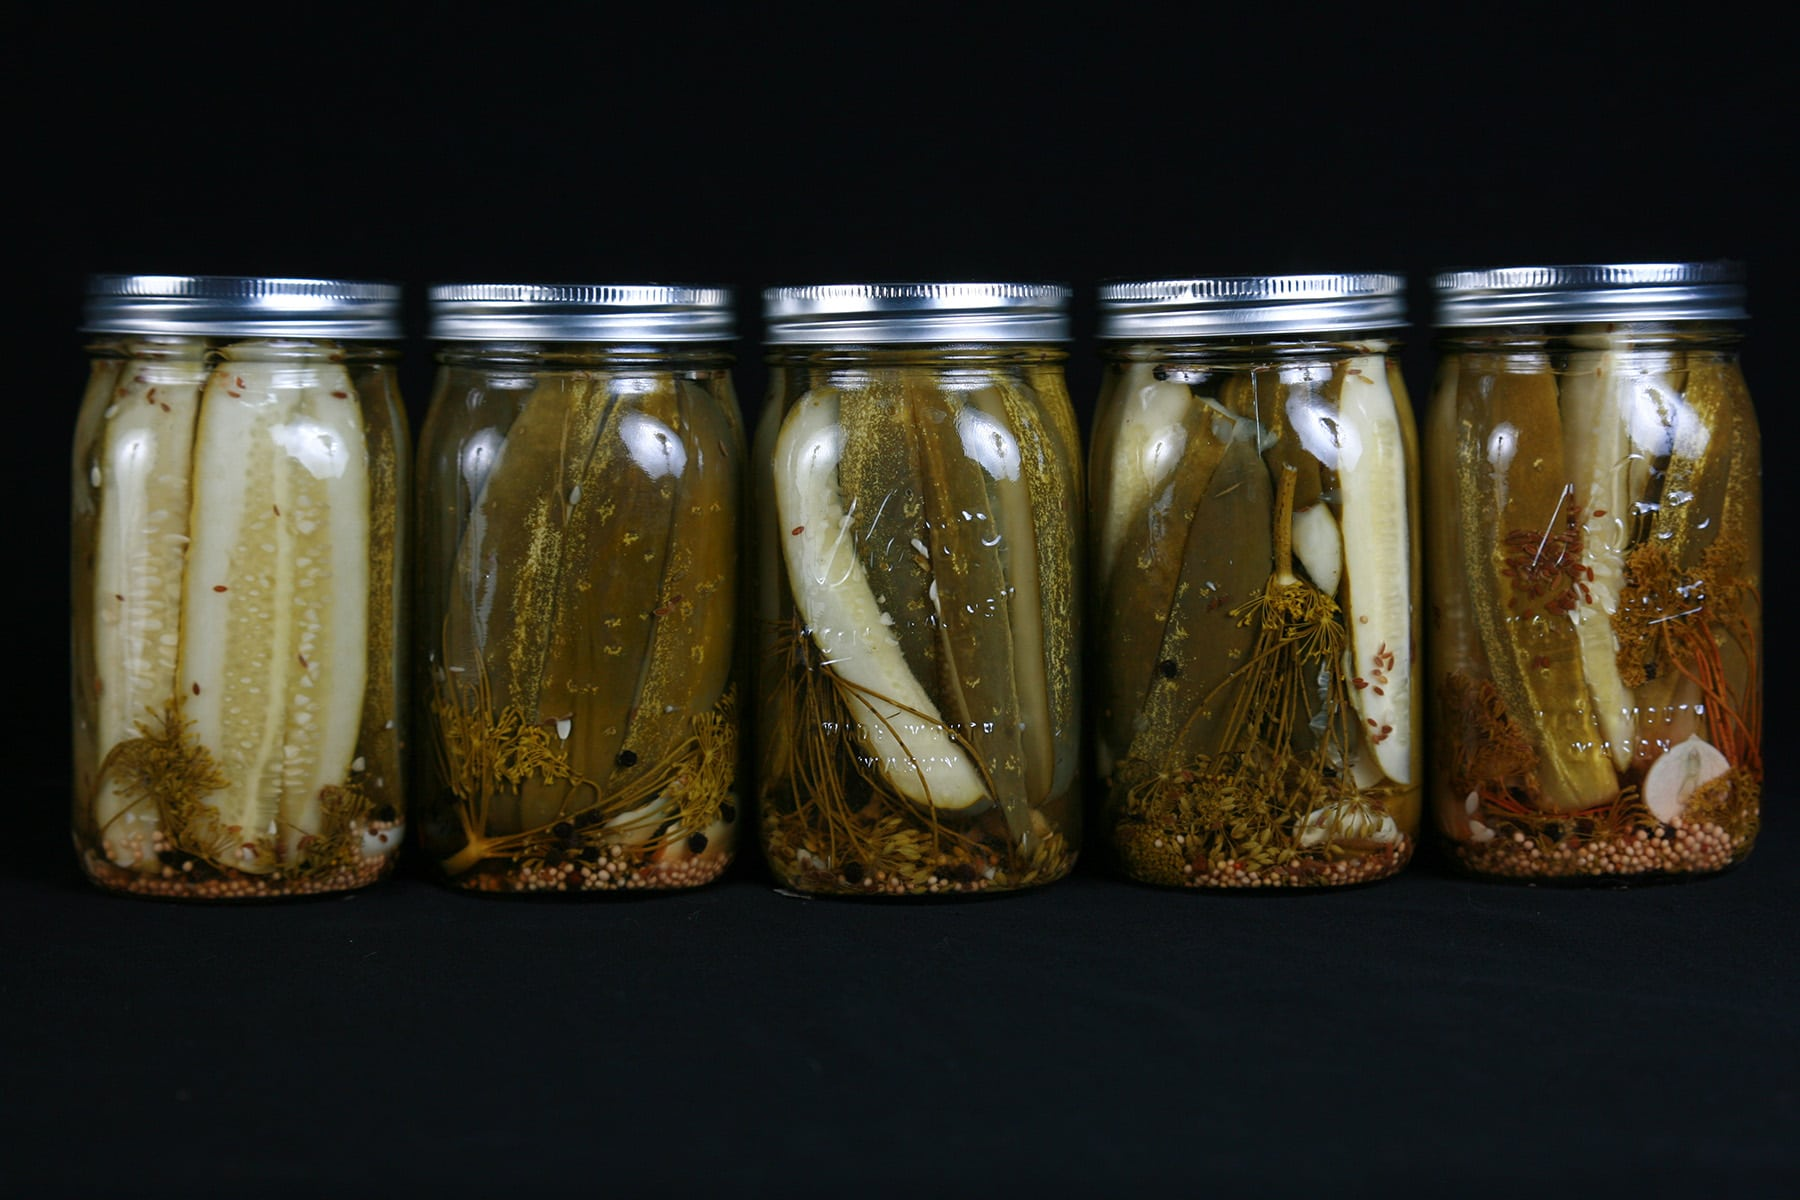 A line of 5 large jars of homemade dill pickles.